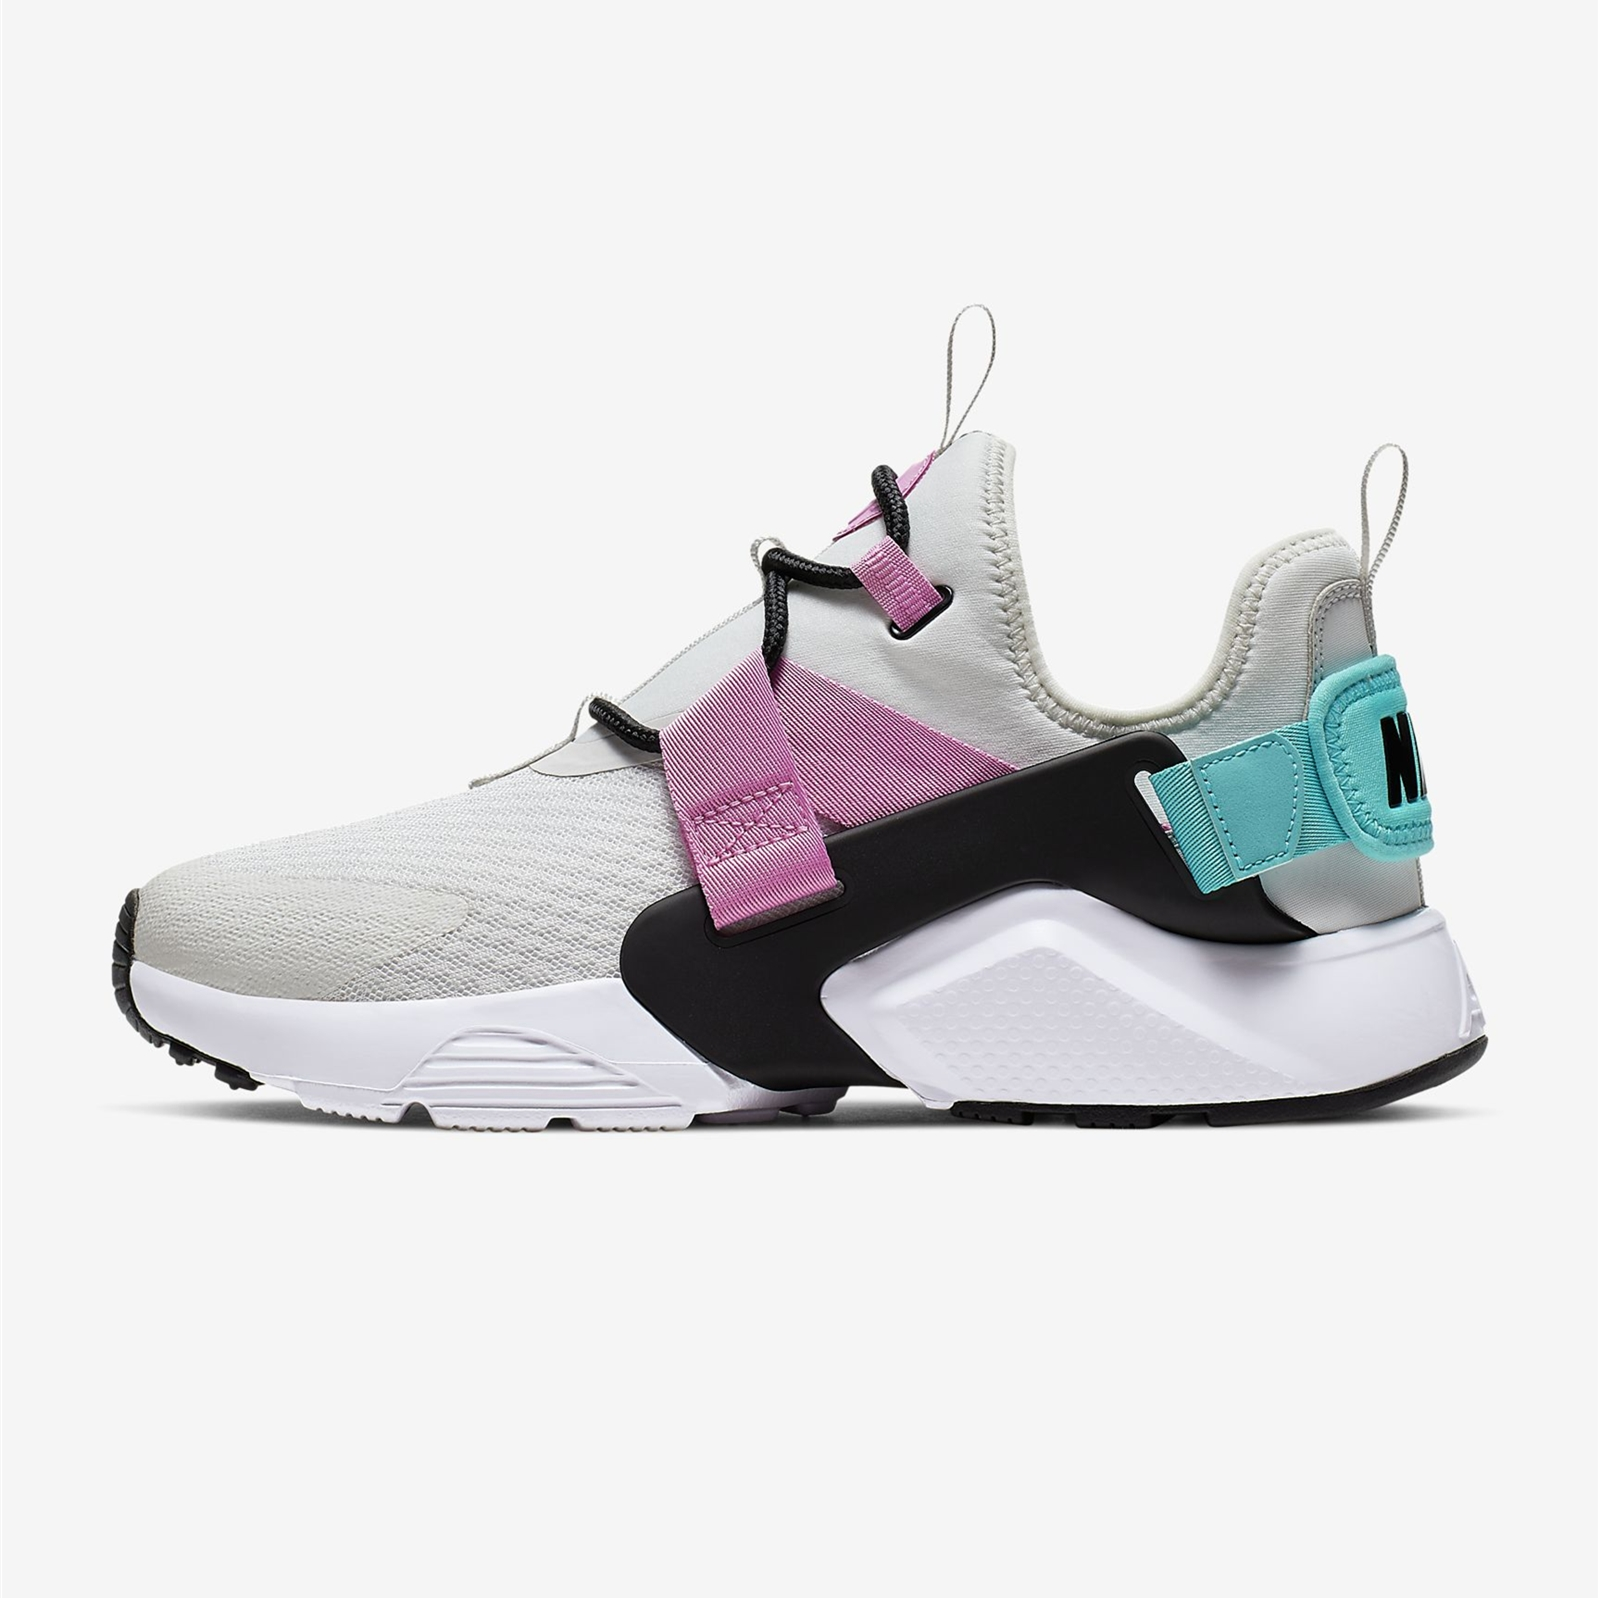 Nike 耐克 Air Huarache City Low 女子运动鞋